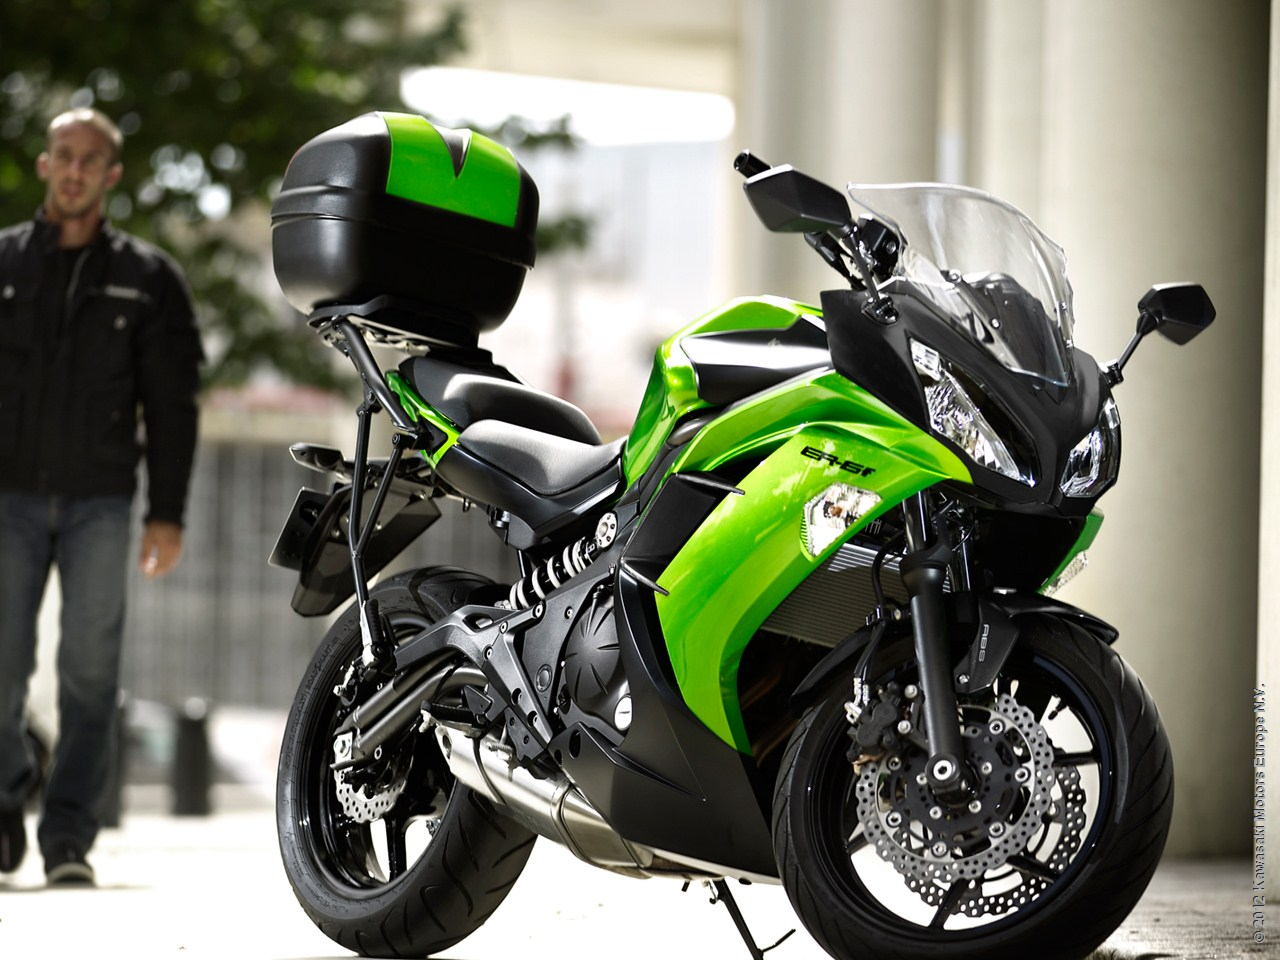 2013 kawasaki er 6f is ready for city rides autoevolution. Black Bedroom Furniture Sets. Home Design Ideas